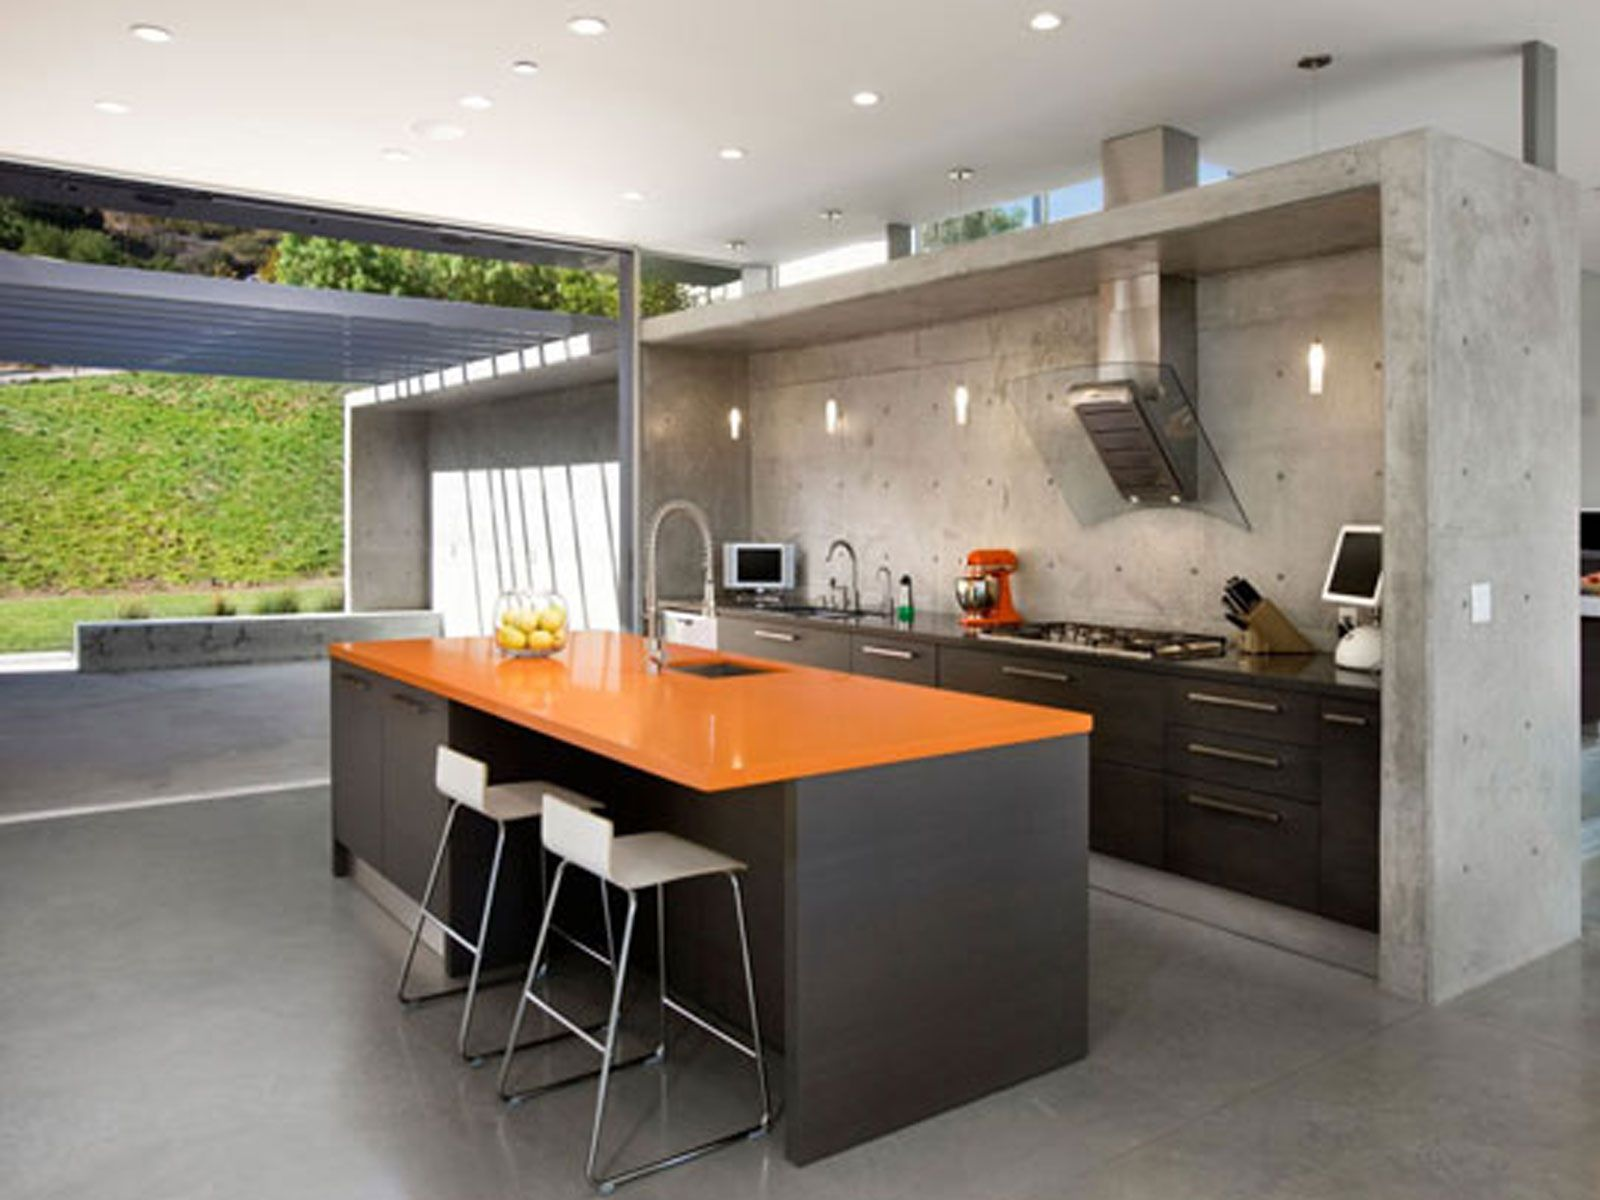 magnificent Modern Kitchen Design Images : Kitchen | home ...